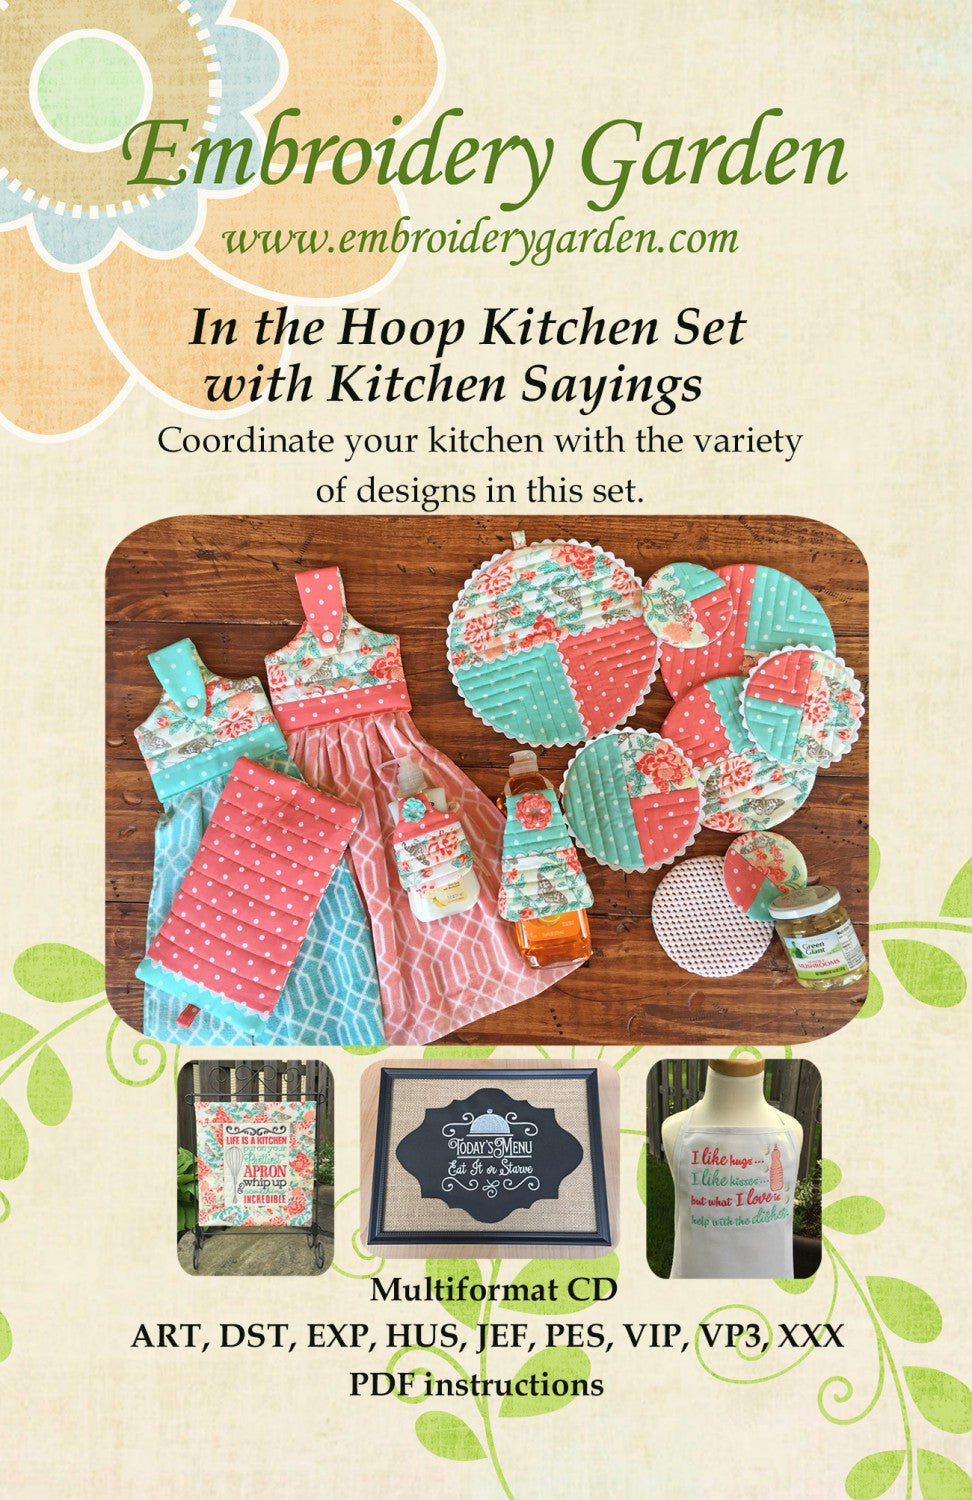 Embroidery Garden In the Hoop Kitchen Set with Sayings